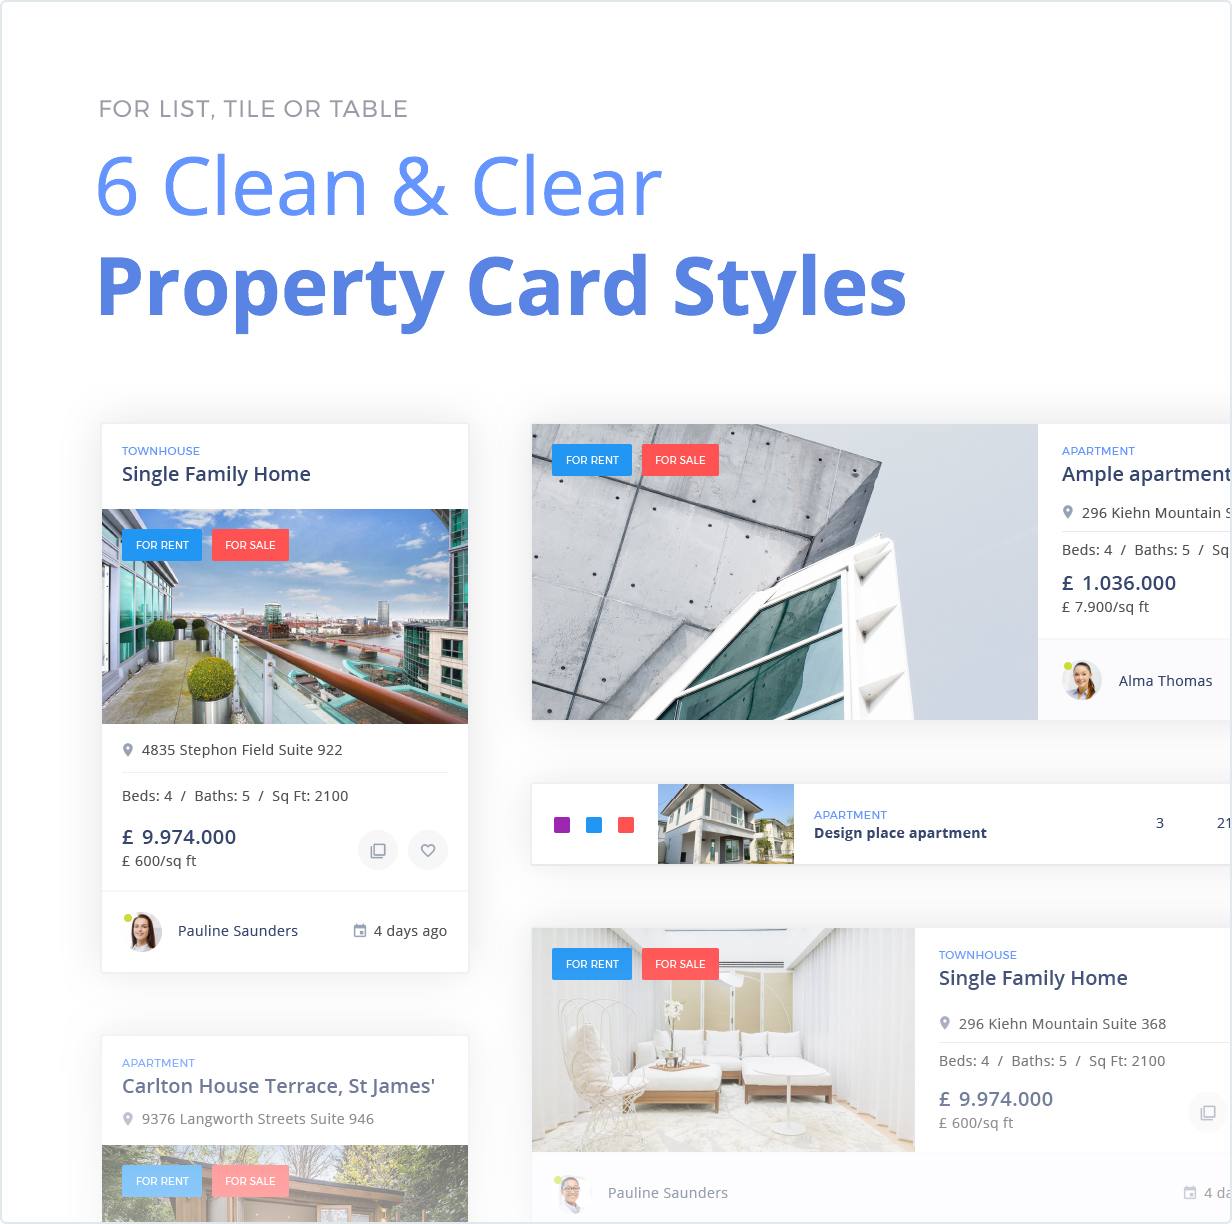 6 Clean and Clear Property Card Styles